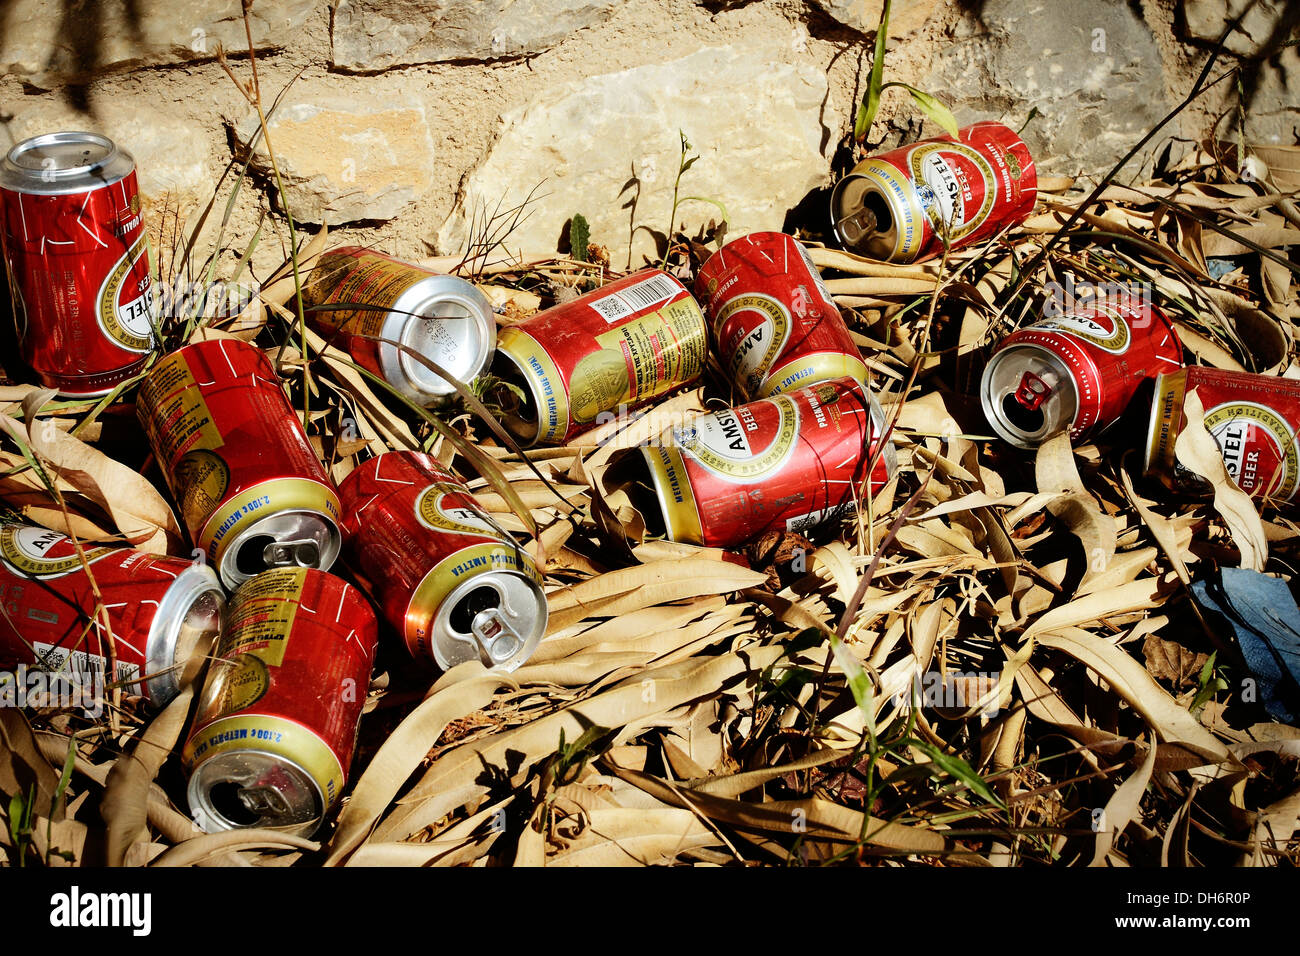 Empty beer cans discarded along the edge of a road on the Greek Island of Skiathos in the Aegean Sea. Stock Photo